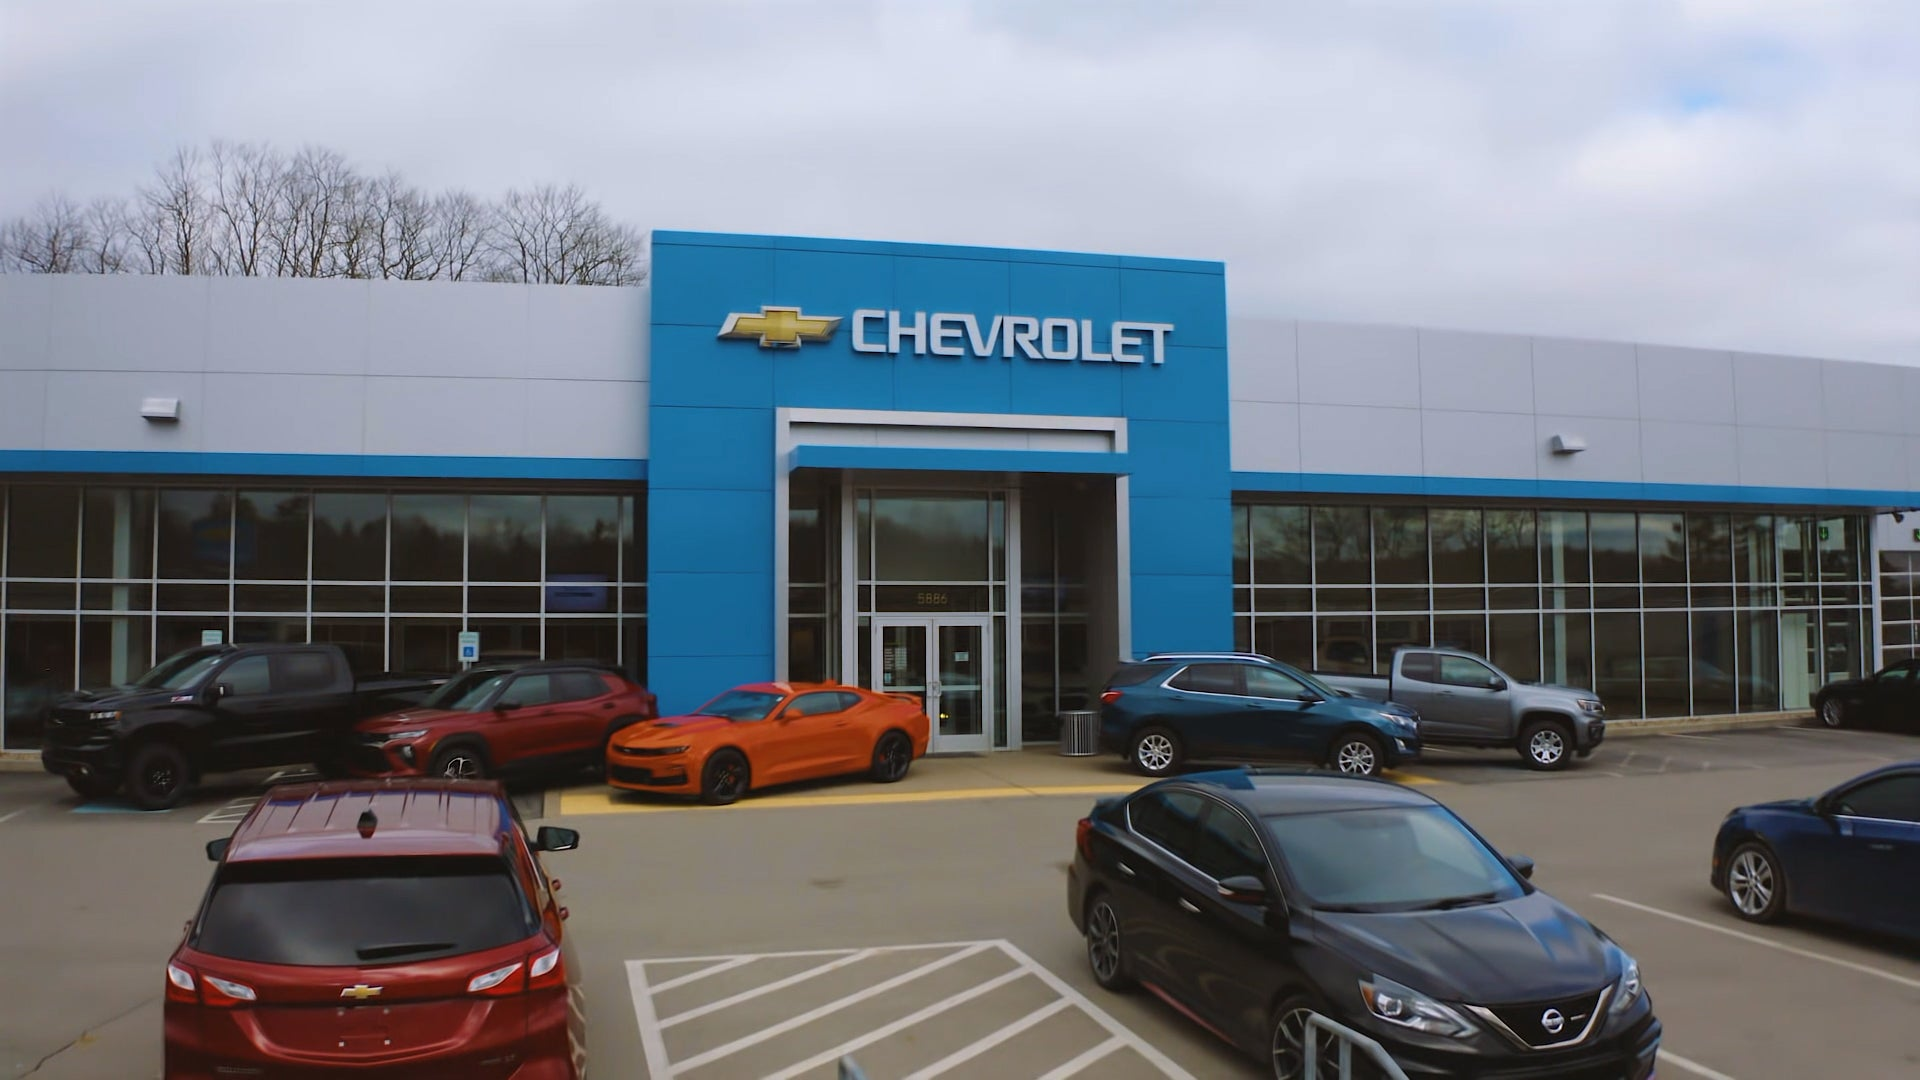 Chevrolet Dealer In Bakerstown Pa Used Cars Bakerstown Jim Shorkey North Hills Chevrolet